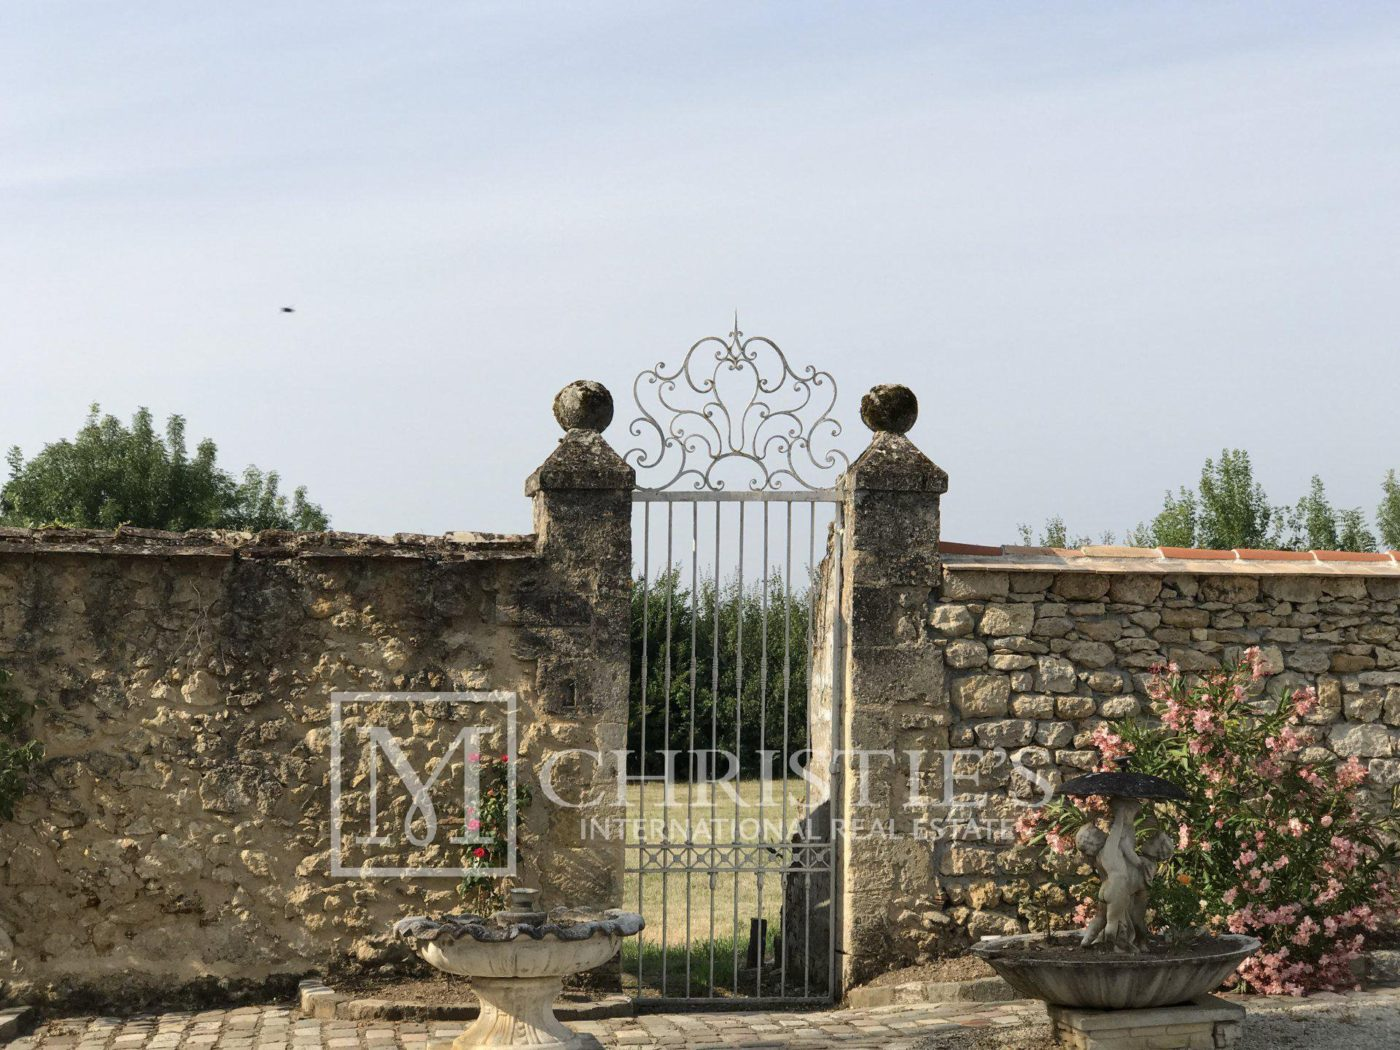 Building - Bordeaux Vineyard estate of approx. 58 ha  with 15th century Chateau